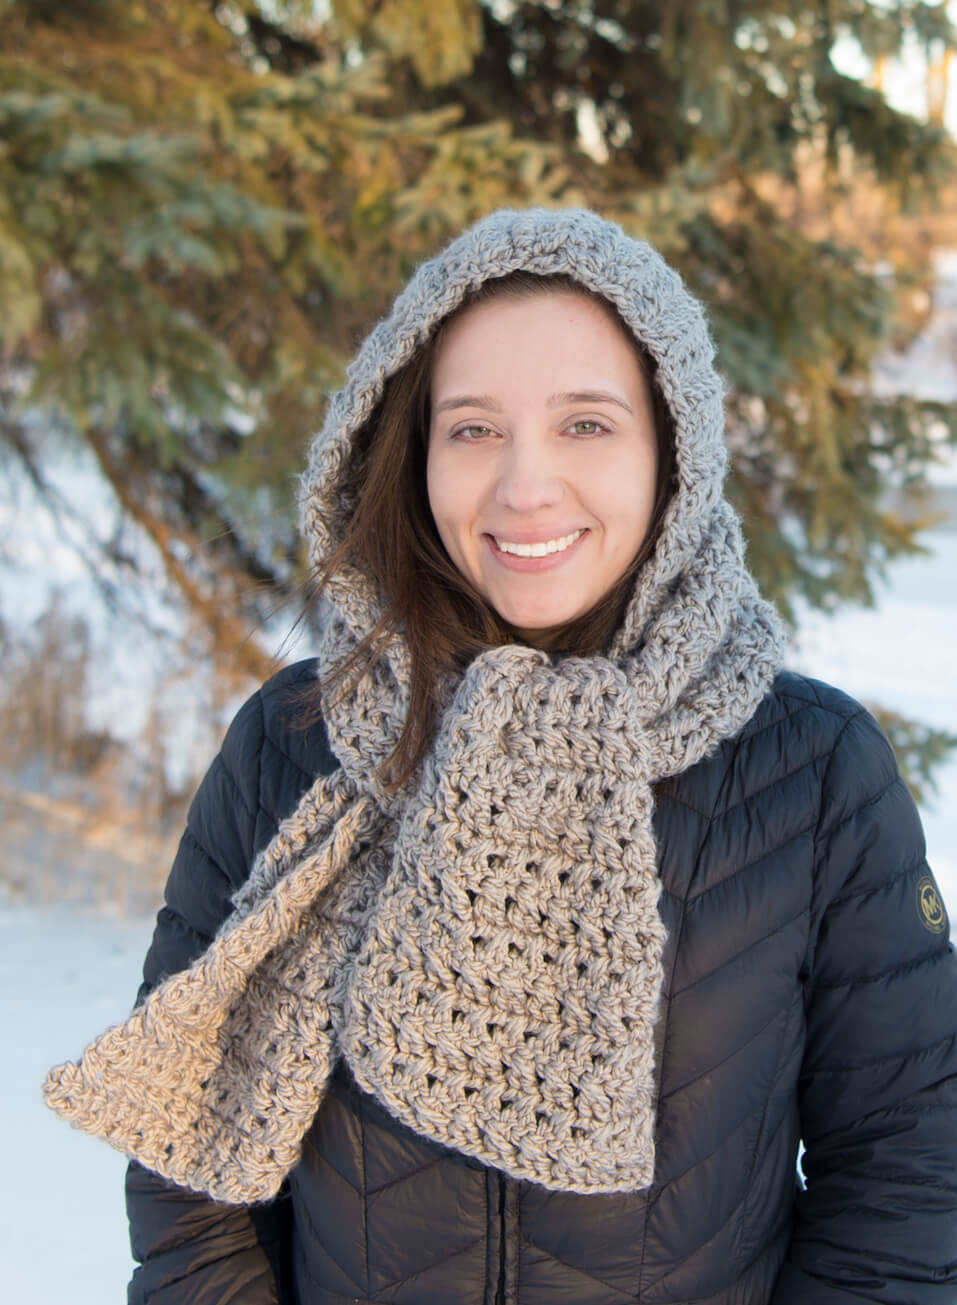 Crocheted Hoods Cowls 20 Enchanting Designs For Women 7 Adorable